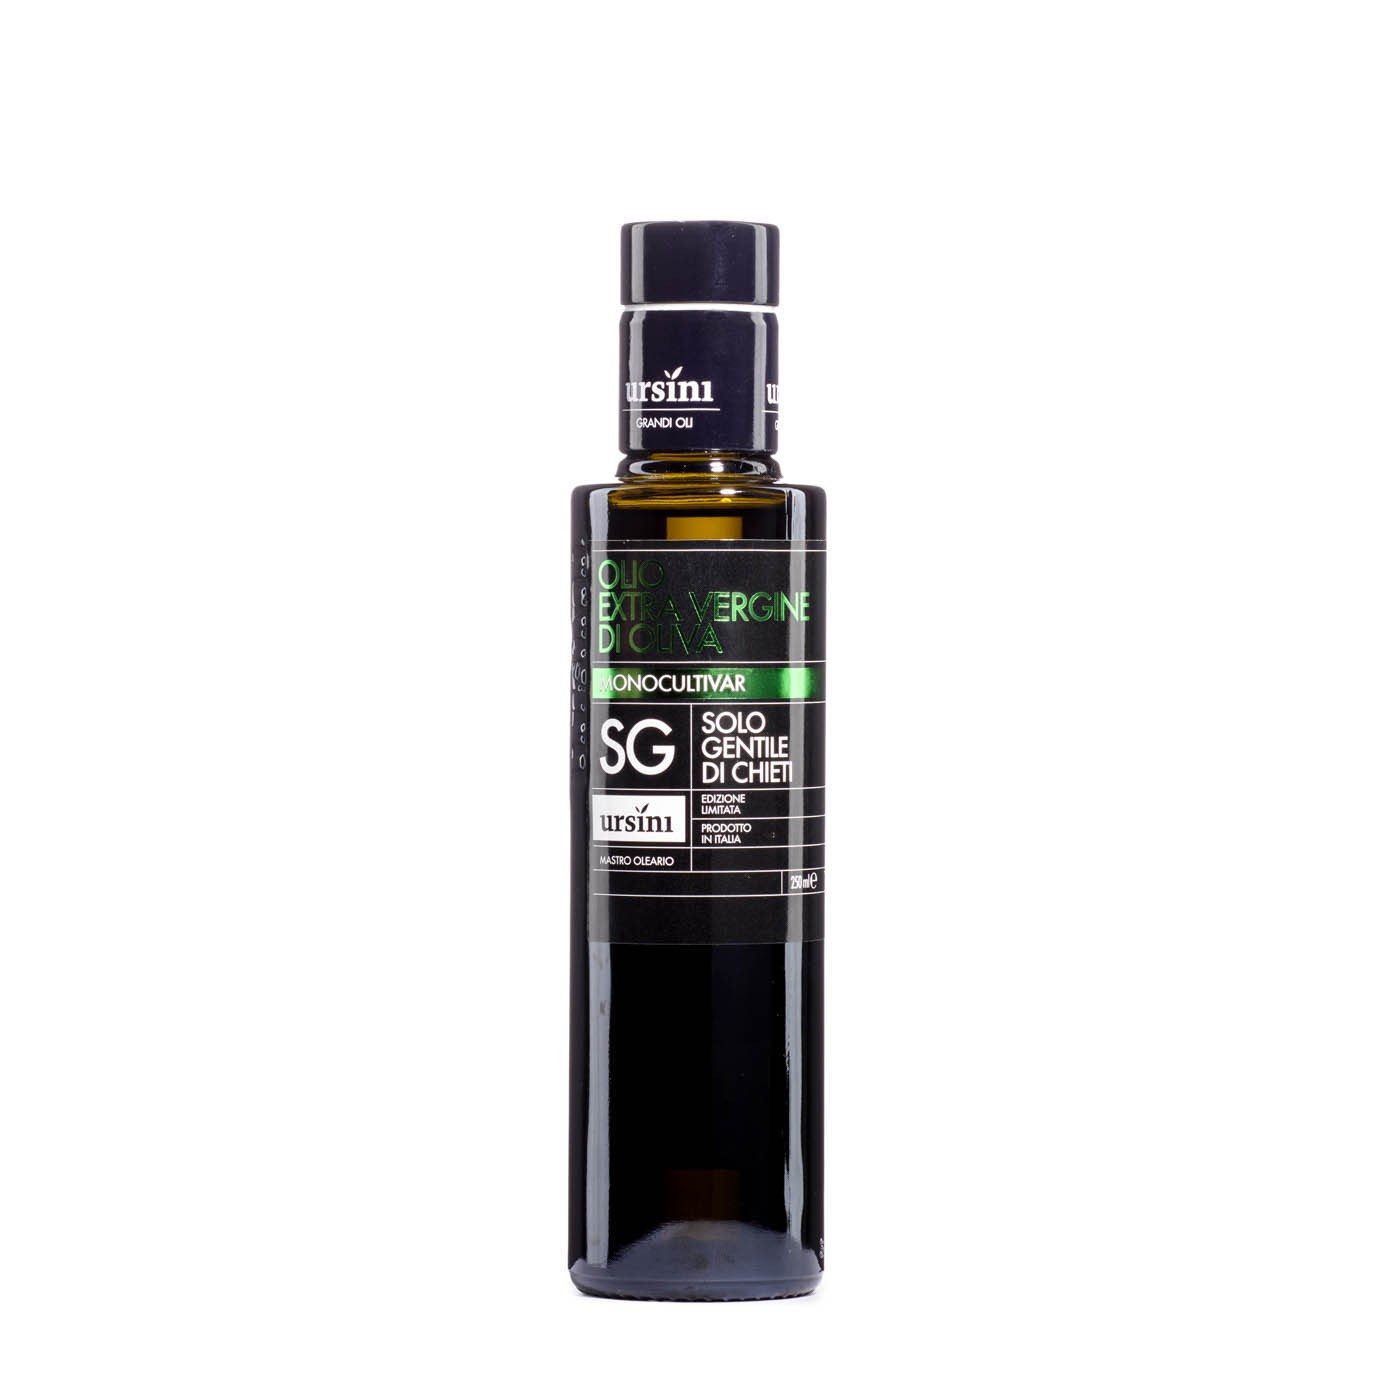 Chieti Extra Virgin Olive Oil 8.5 fl oz